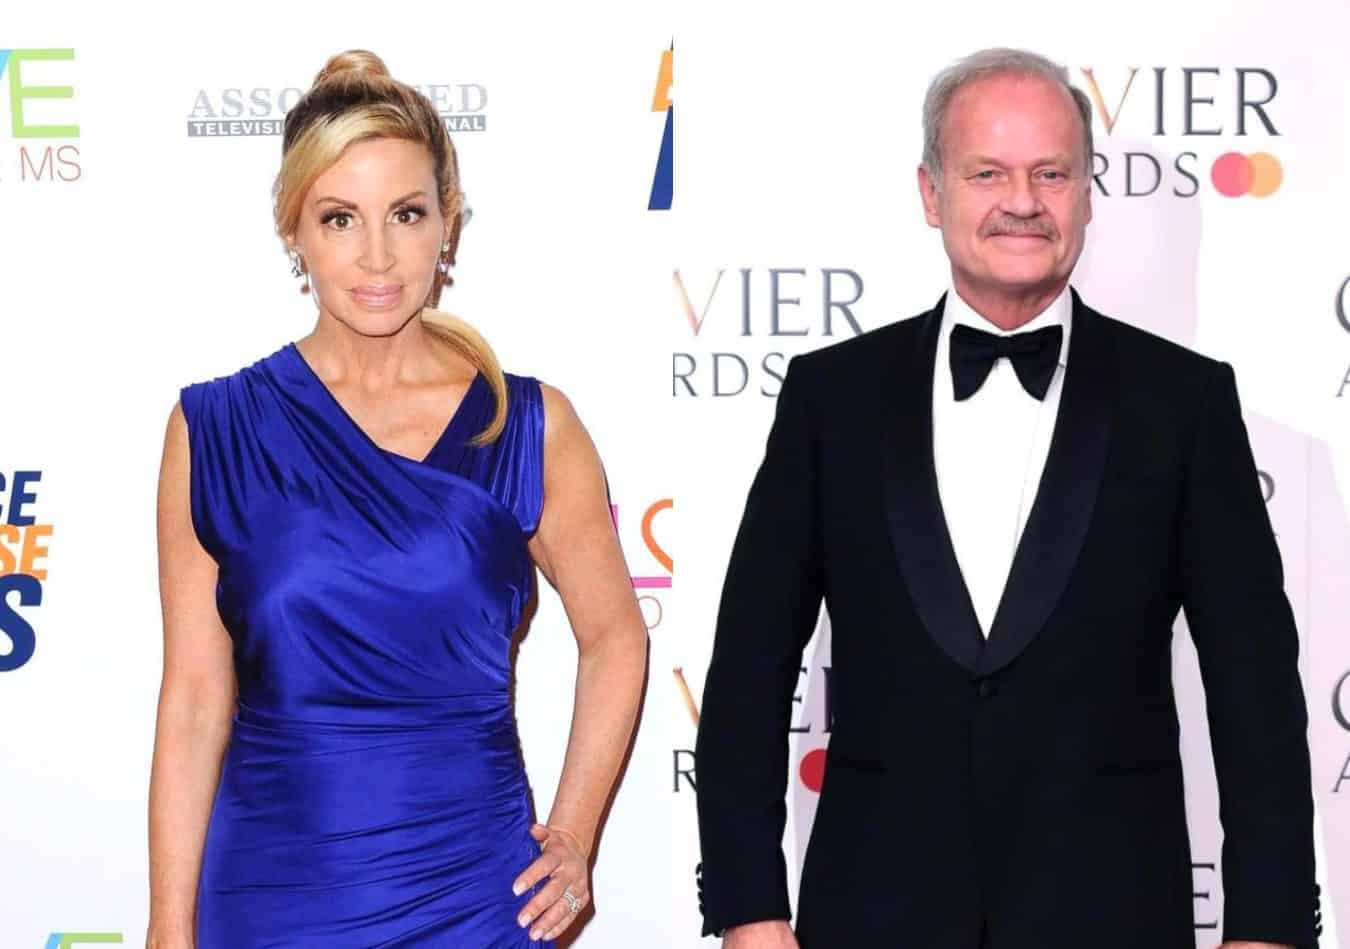 Is Camille Grammer Slamming Ex-Husband Kelsey Grammer for Not Paying Child Support? See the RHOBH Star's Tweet